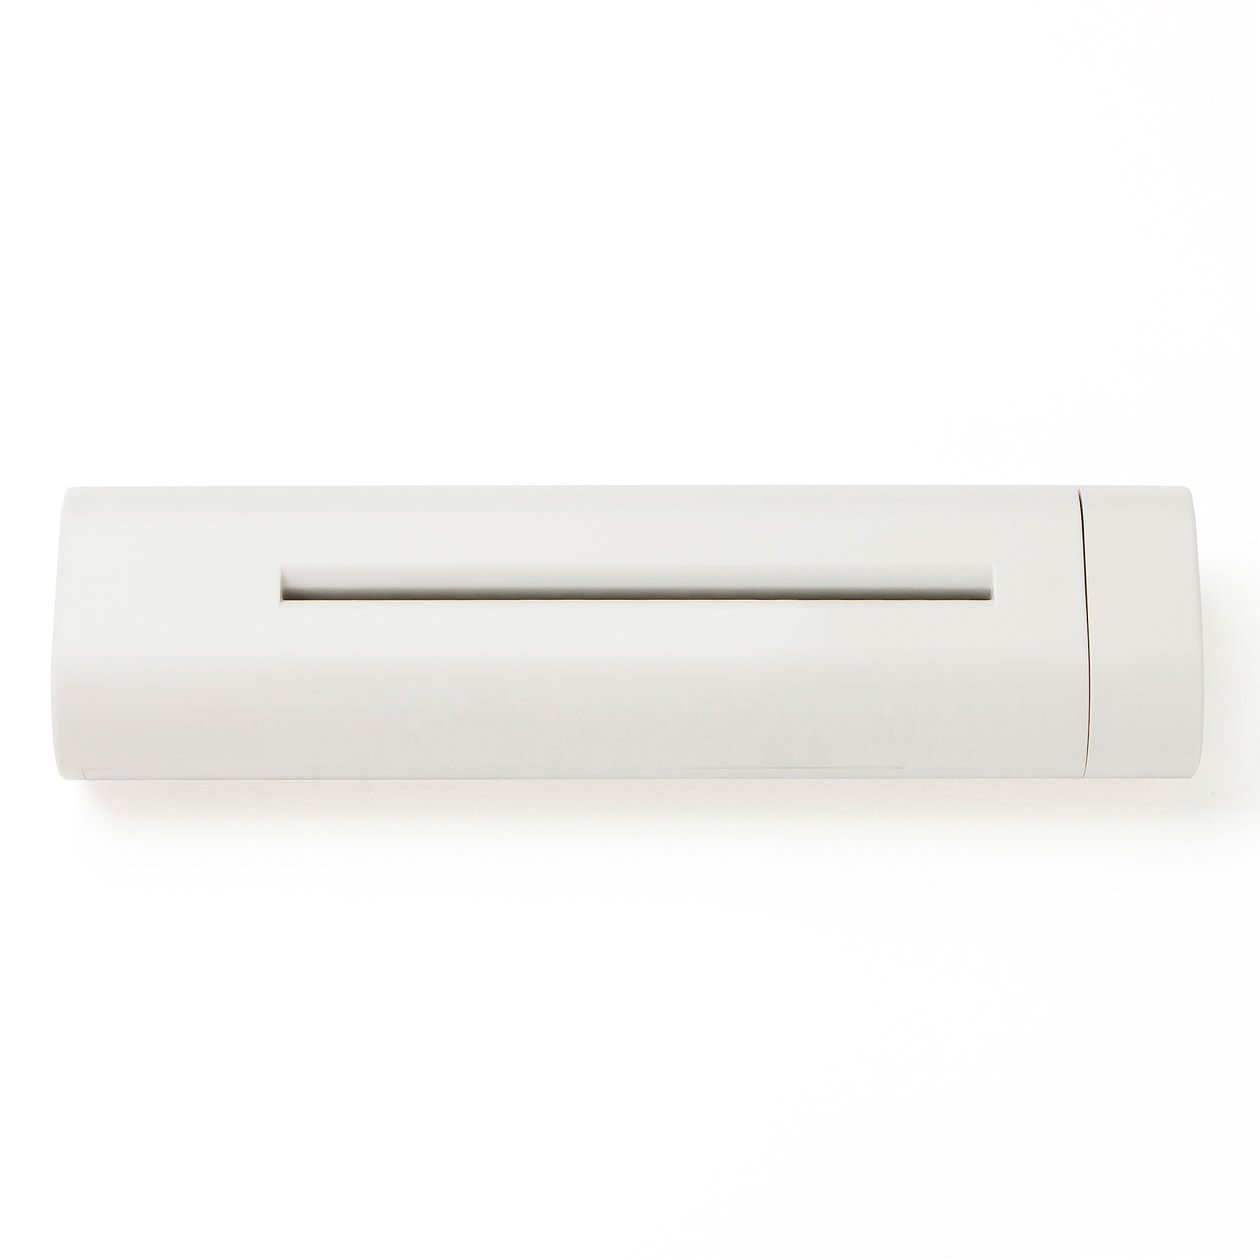 Amazon.com : MUJI JAPAN, New Hand Shredder [Ship From Japan ...